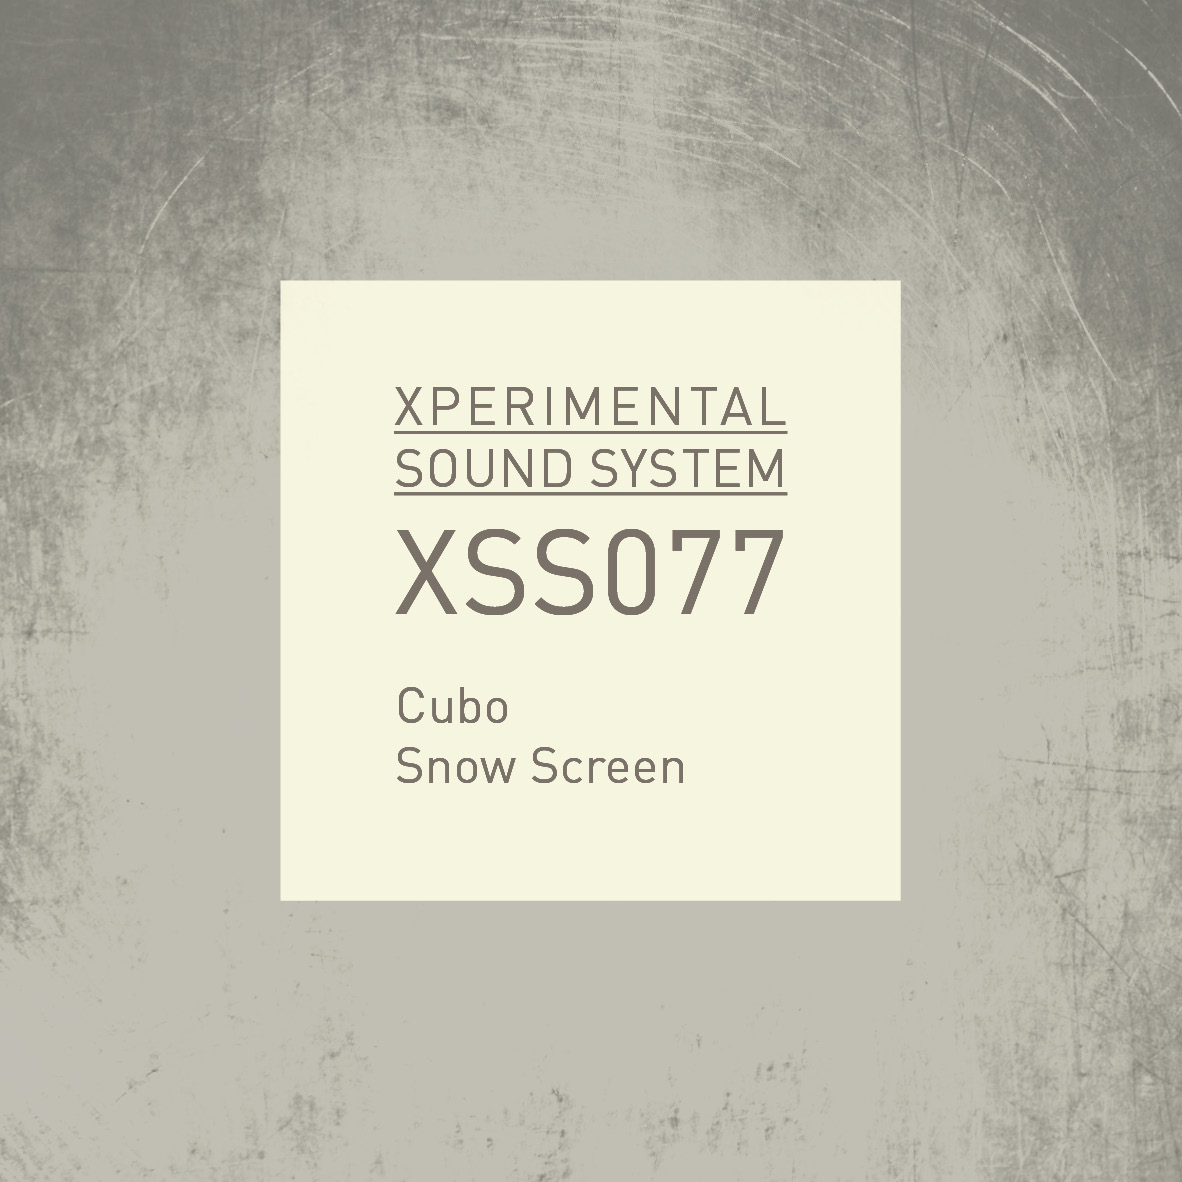 XSS077 | Cubo | Snow Screen